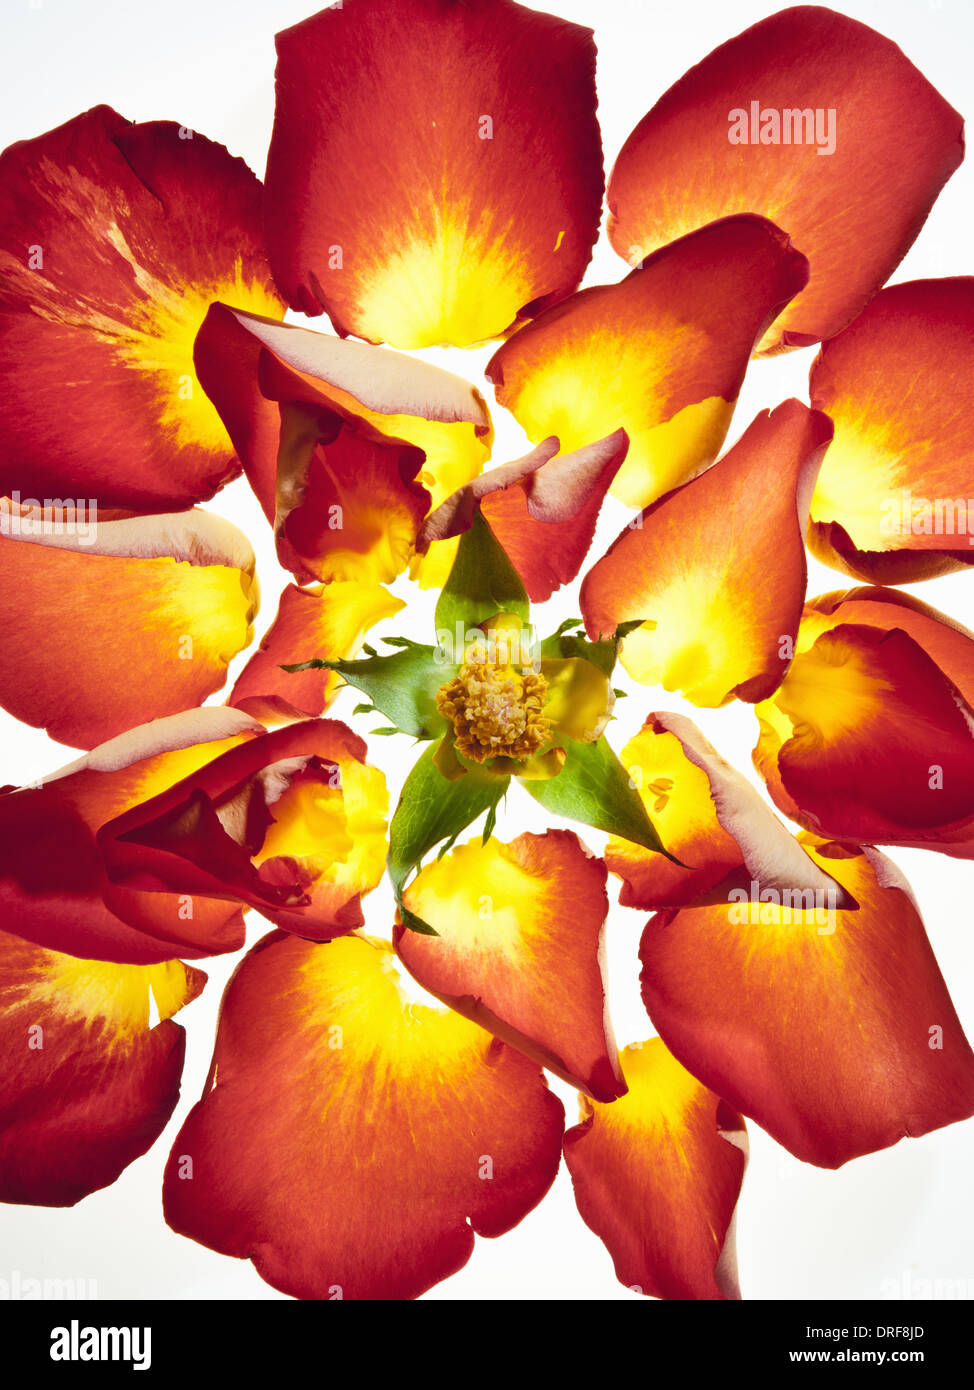 Maryland USA flowerhead with vivid orange and yellow petals - Stock Image